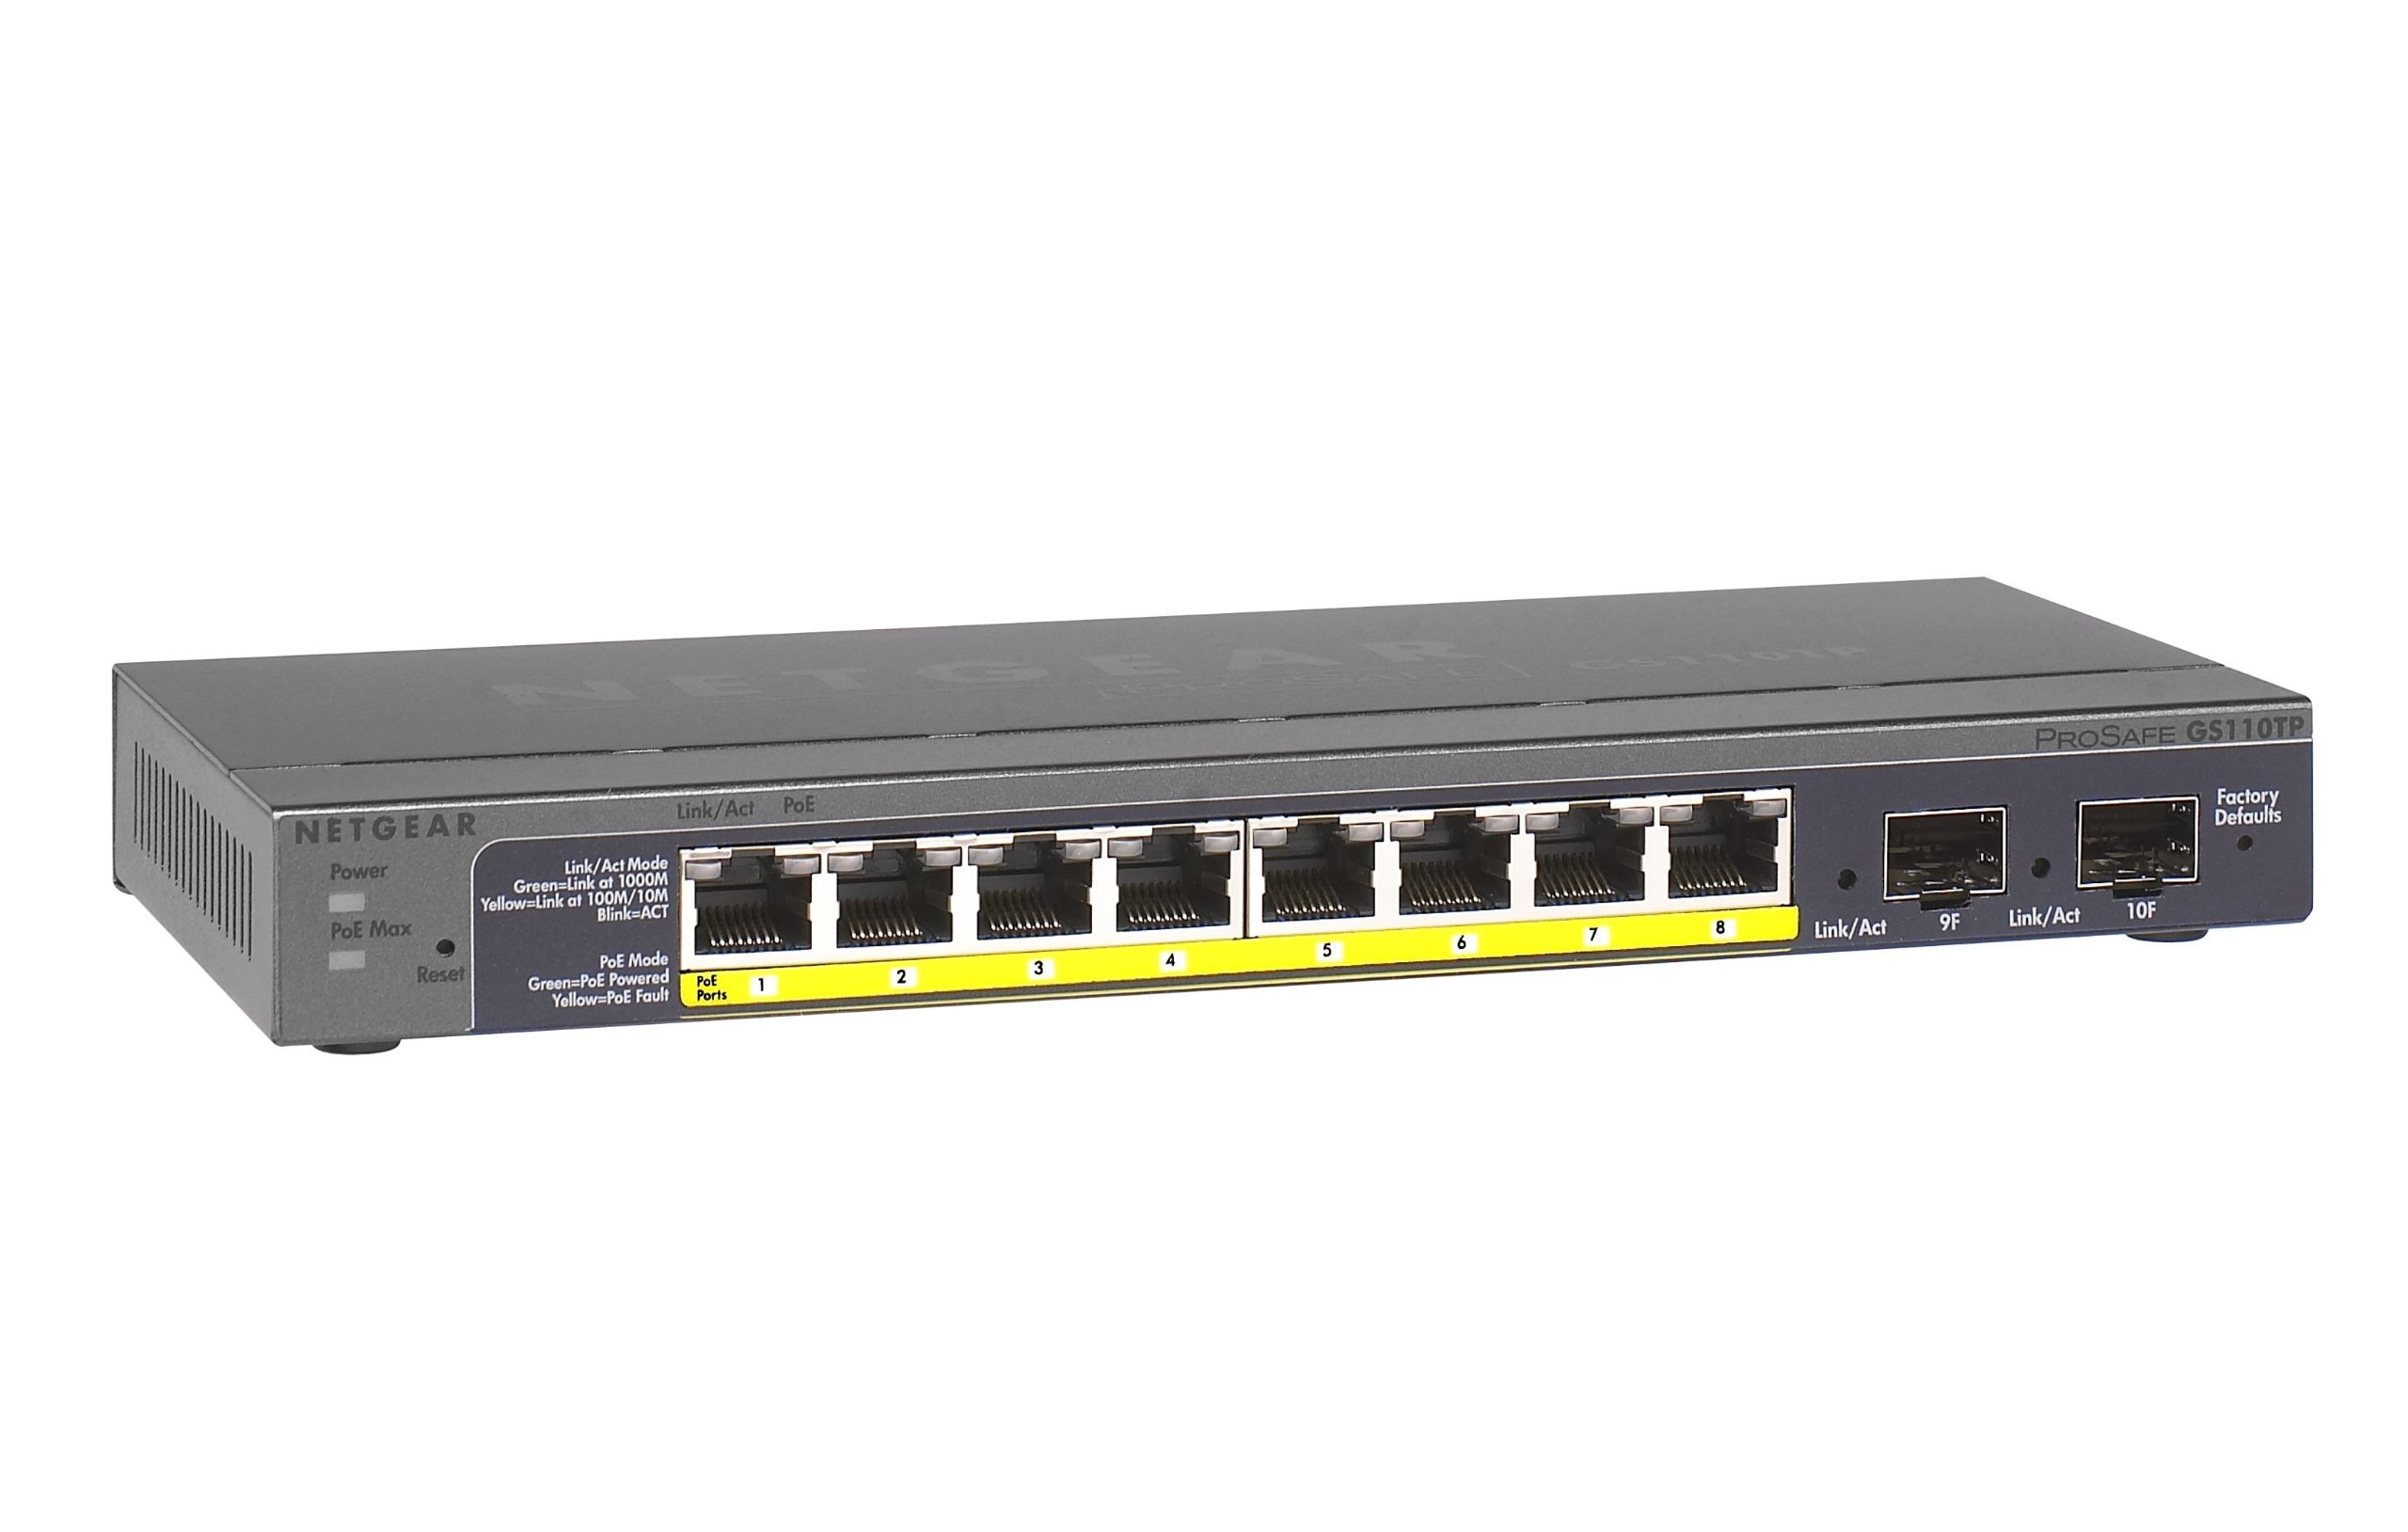 NETGEAR 8-Port Gigabit Smart Managed Pro Switch, 53w, PoE, ProSAFE Lifetime Protection (GS110TPv2)